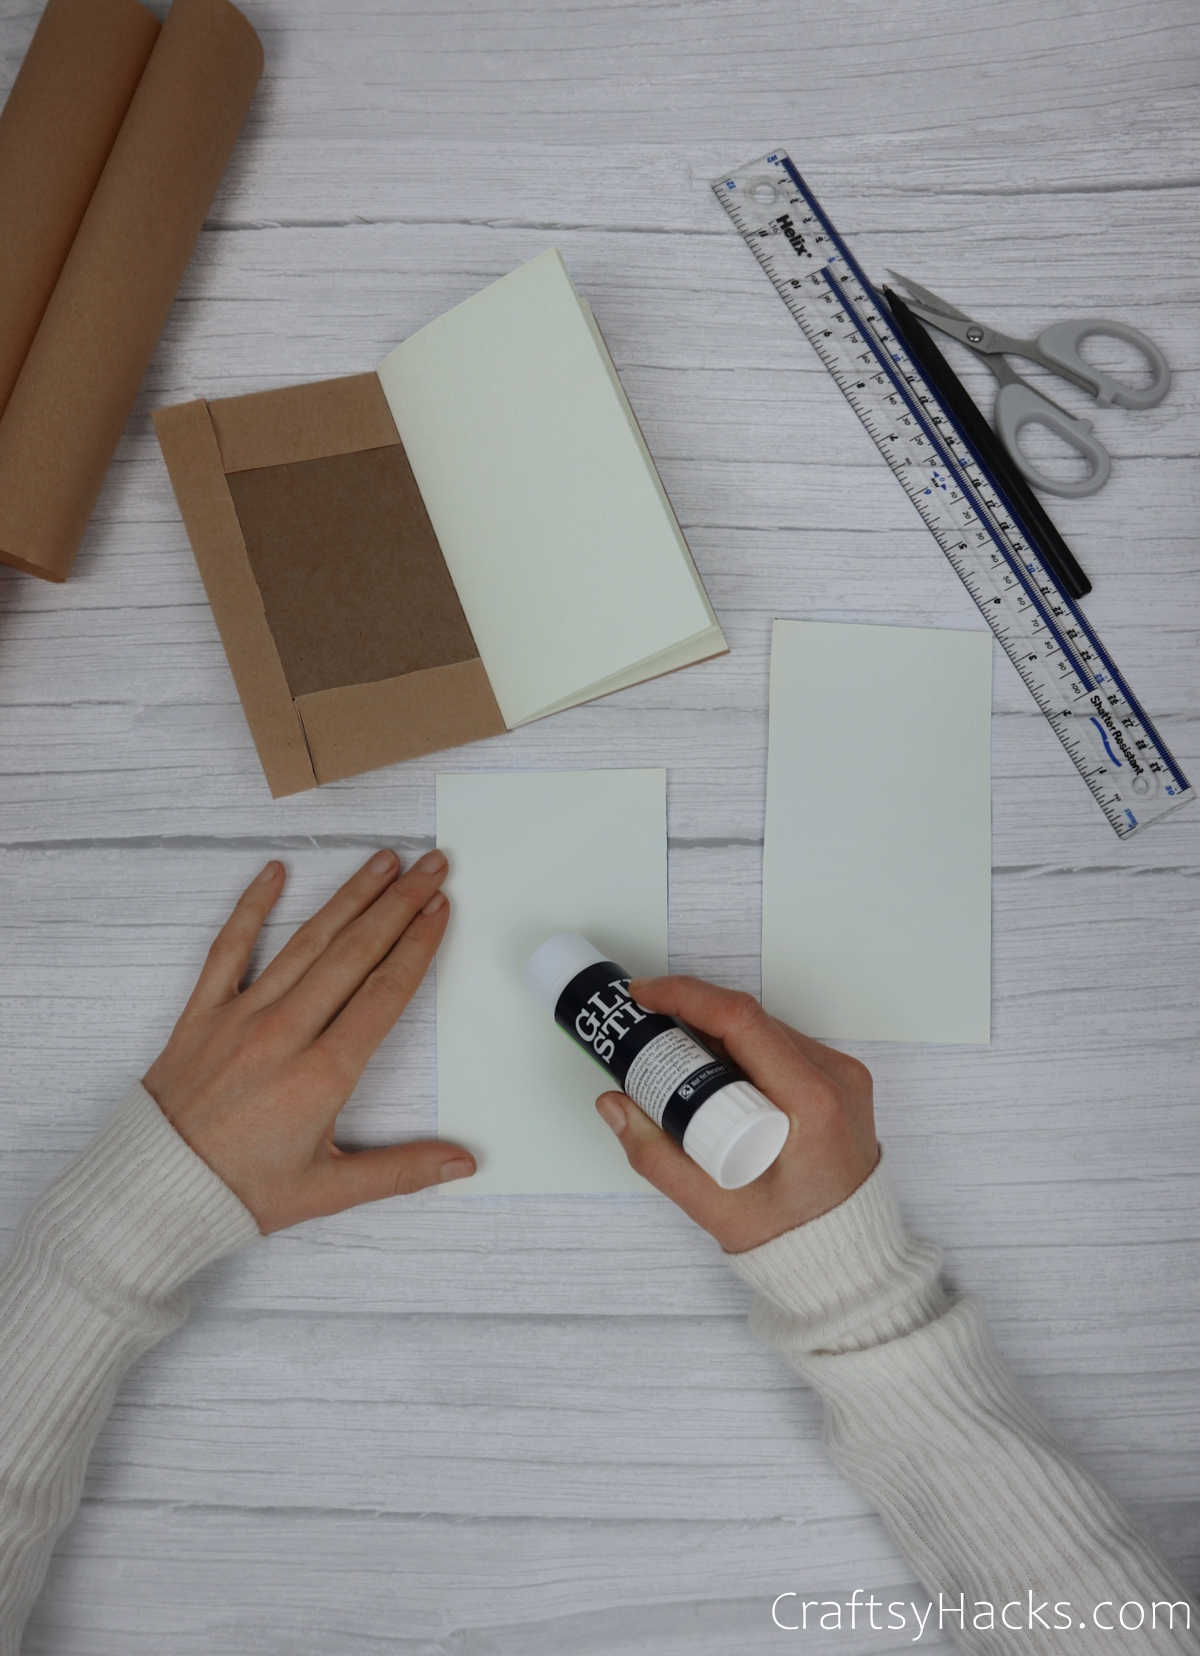 adding glue to paper rectangles